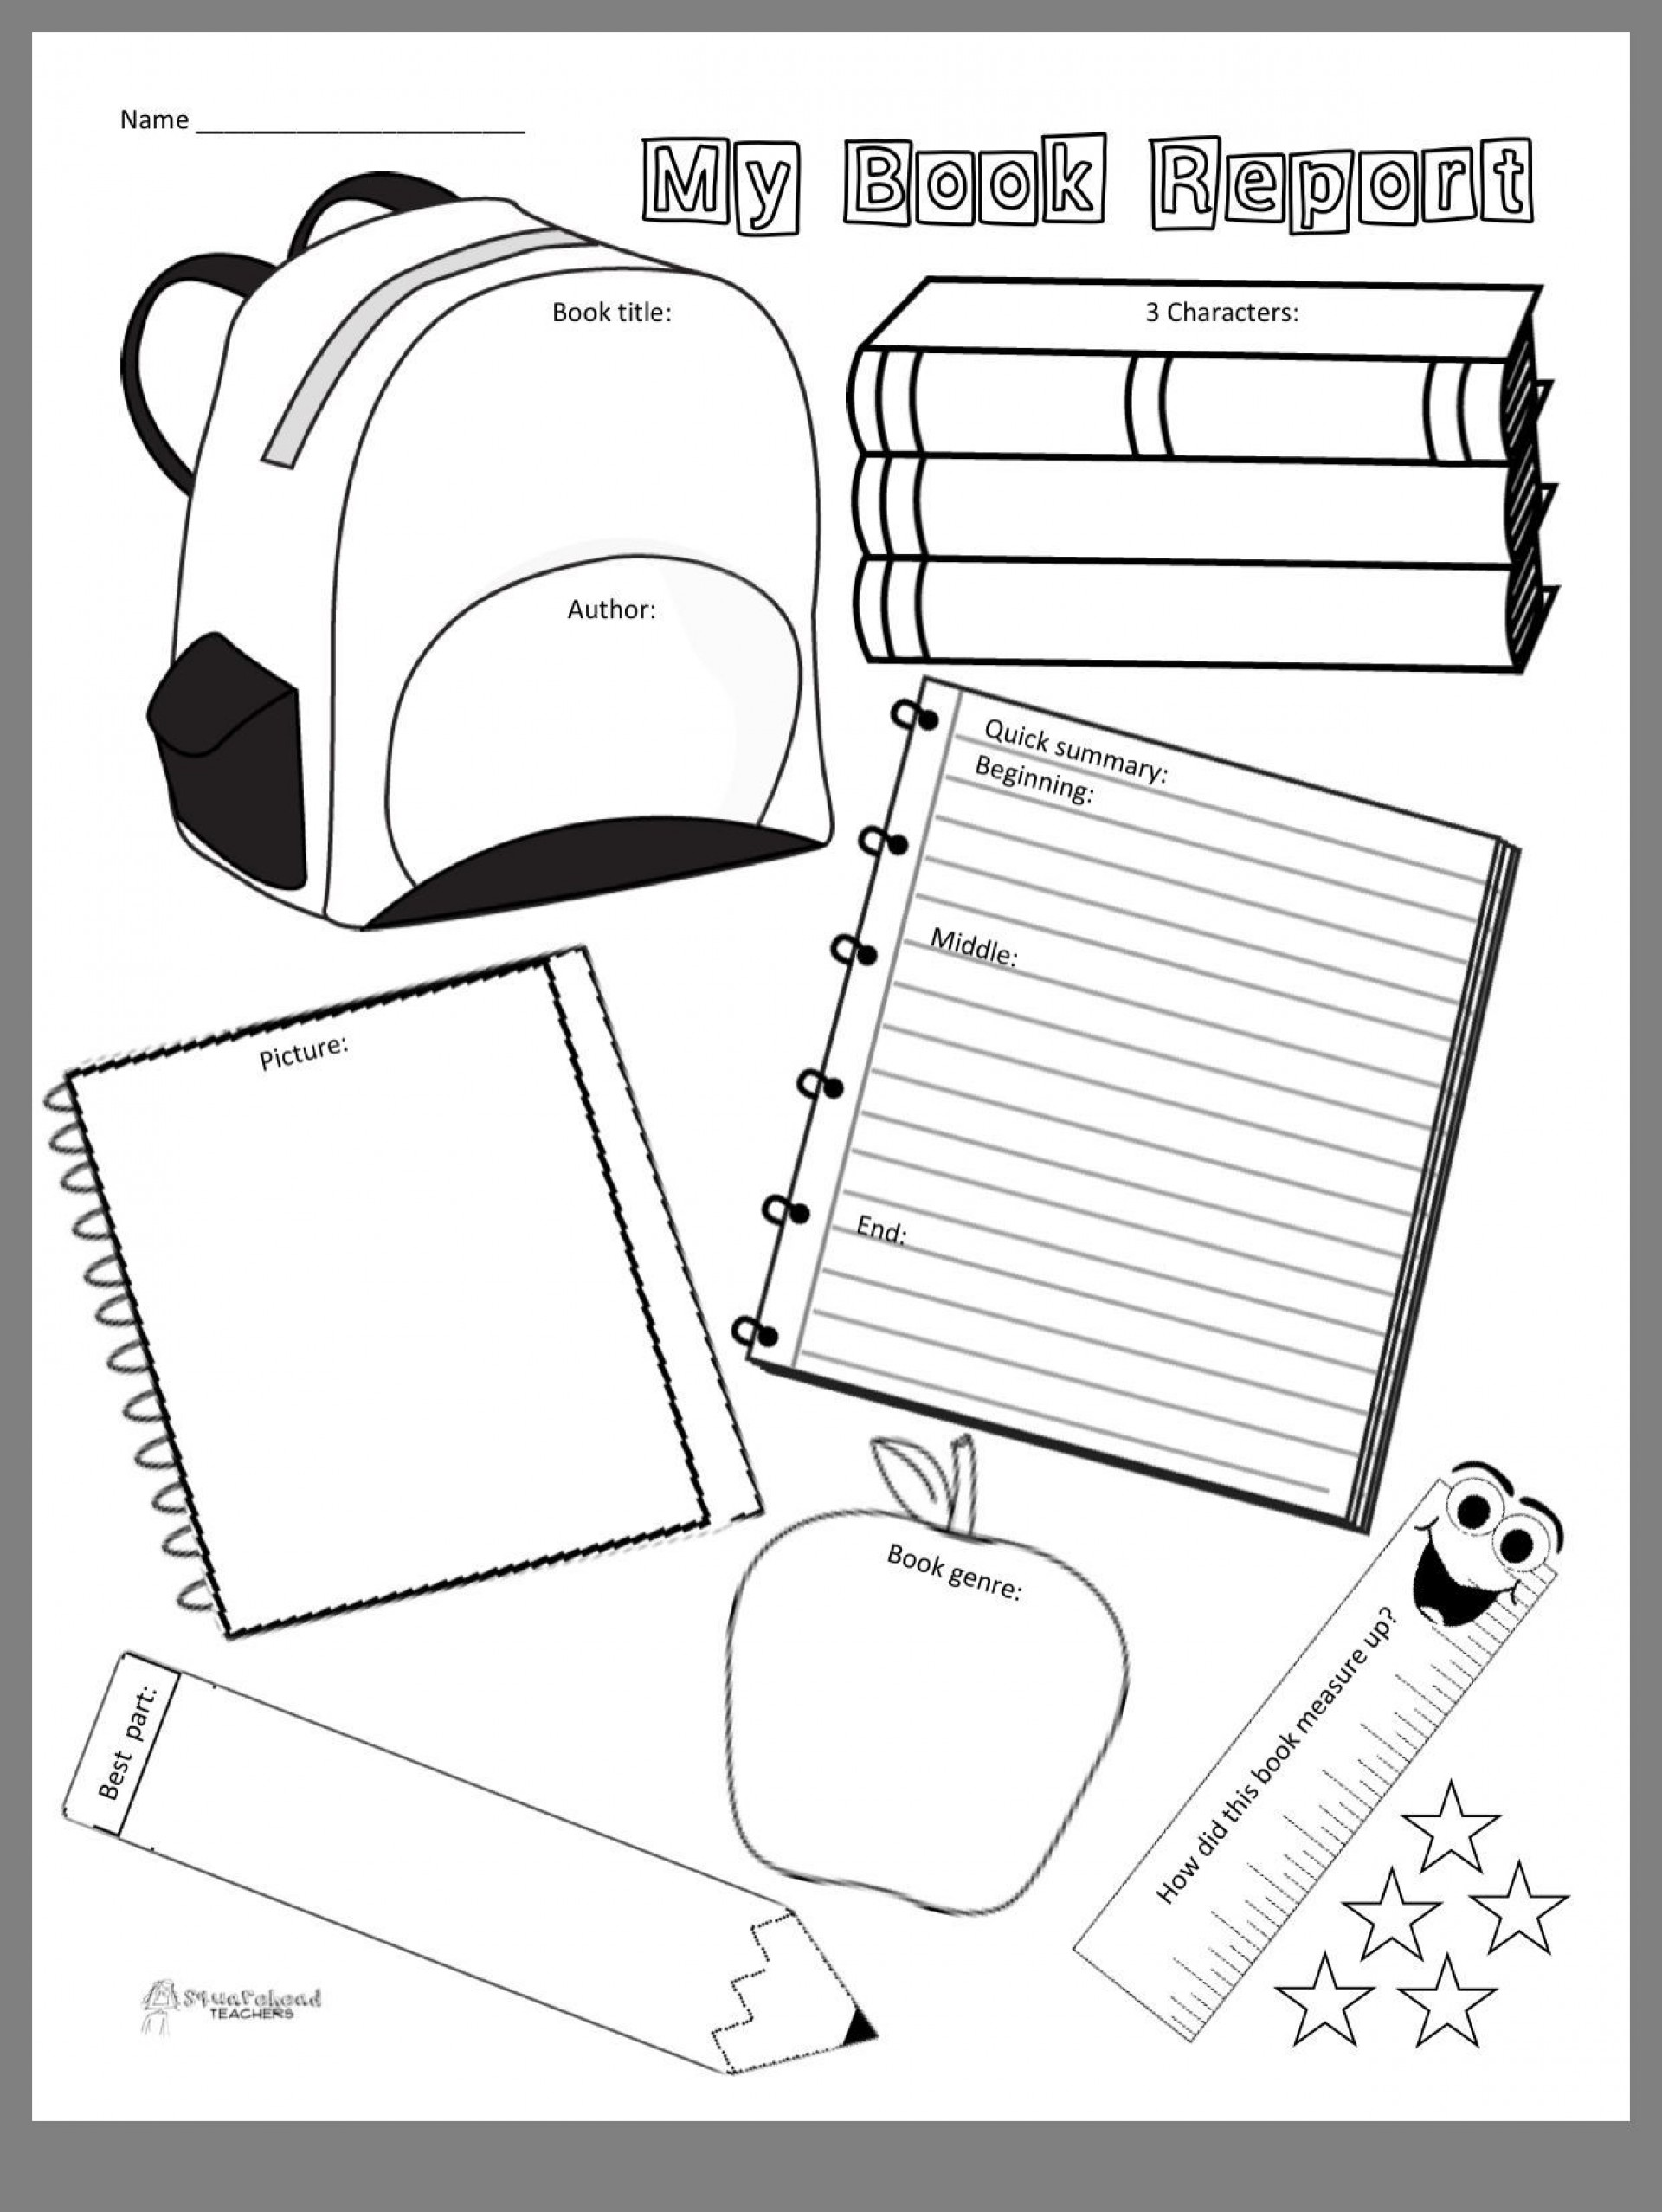 001 Formidable Free Printable Book Report Template For 6th Grade Image 1920